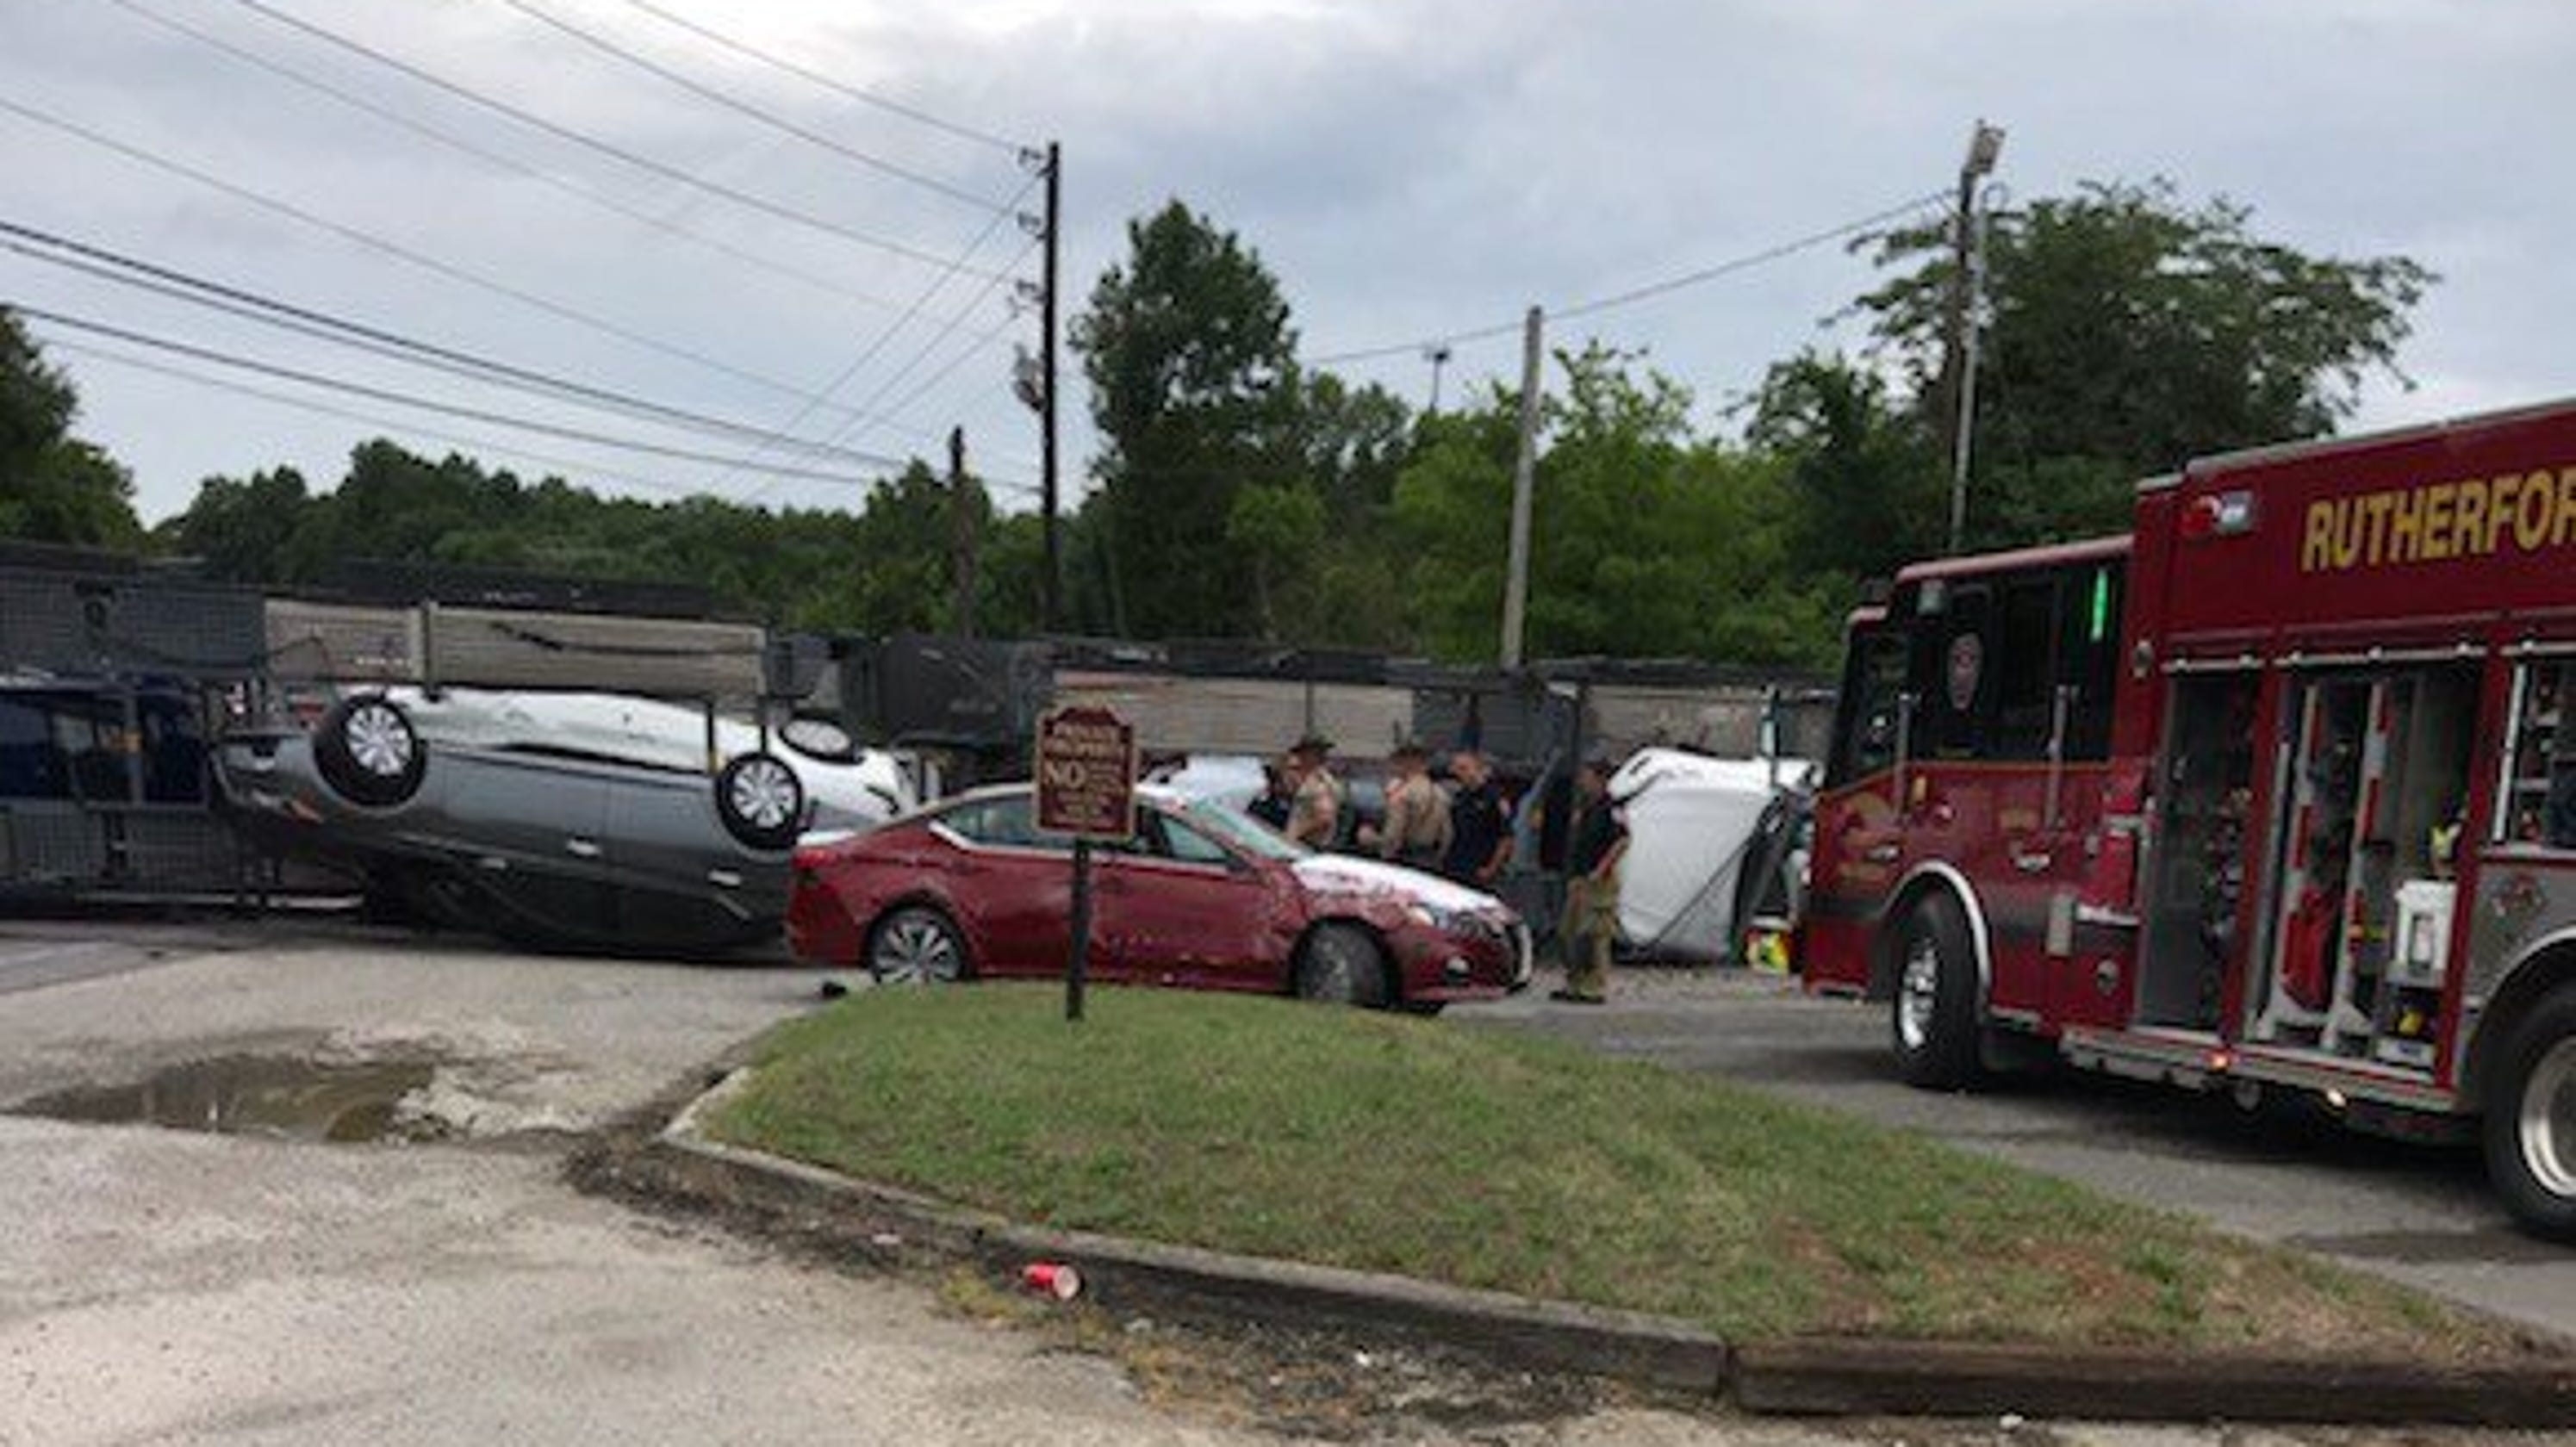 RCFR: West Jefferson Pike opened after closure from overturned trailer